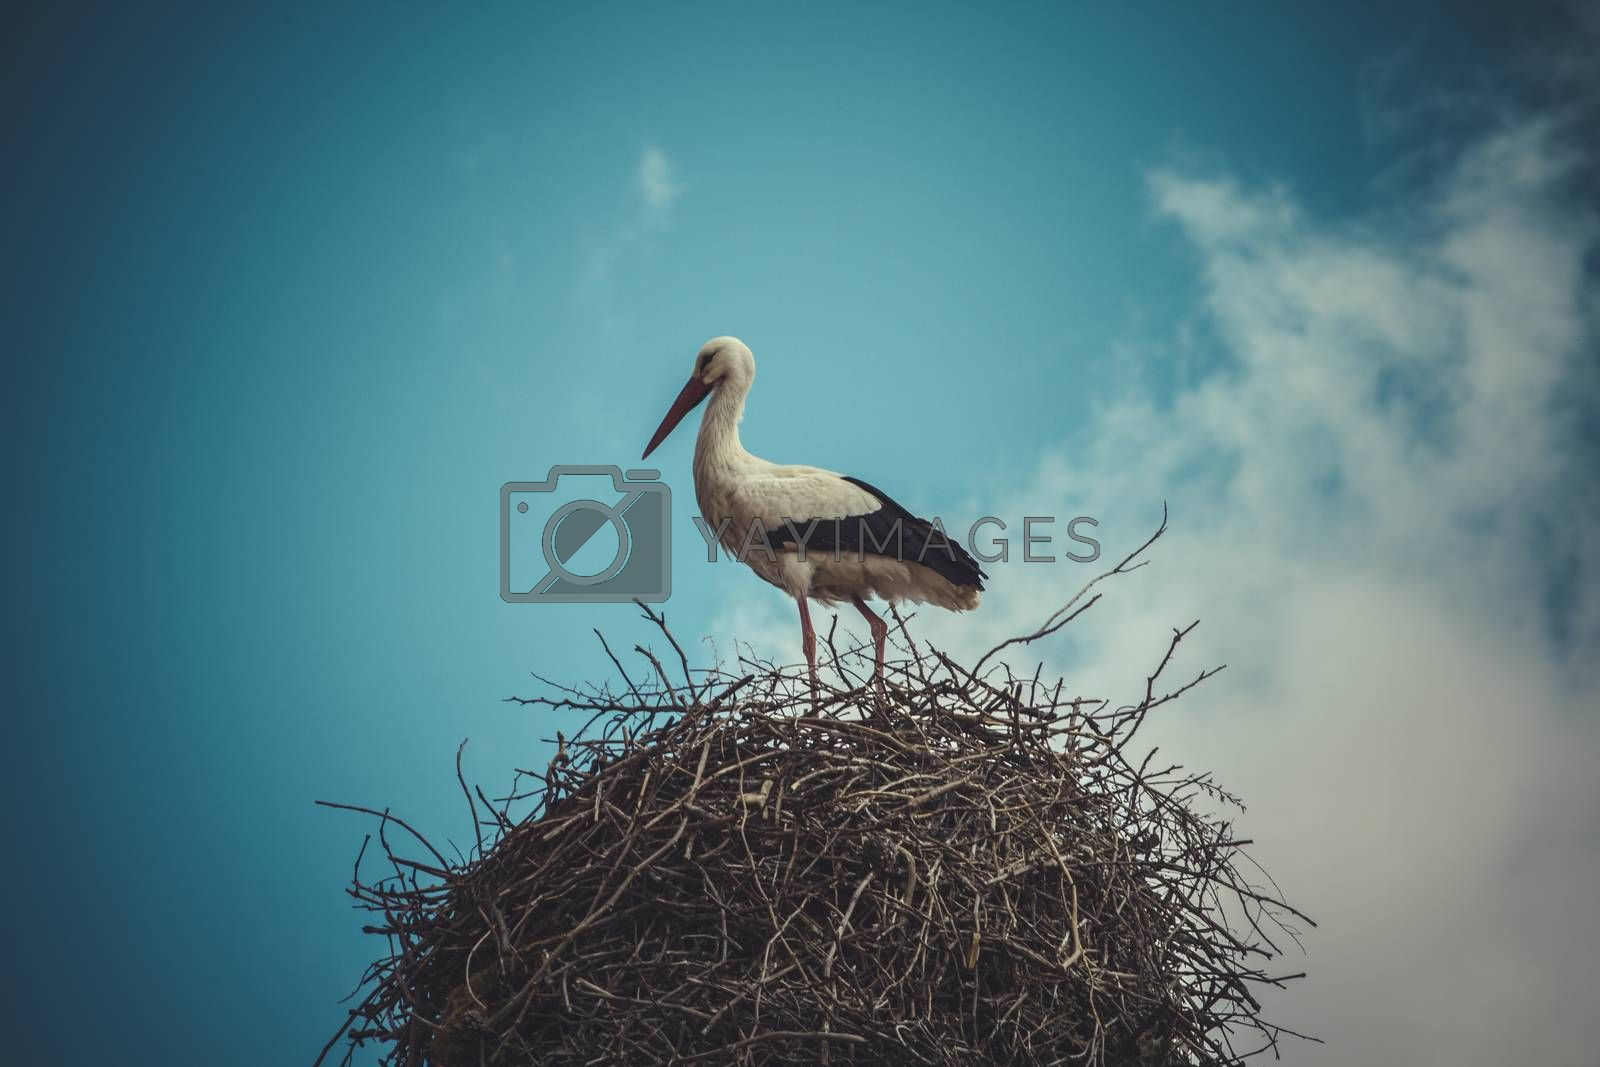 Wildlife, Stork nest made ������of tree branches over blue sky in dramatic